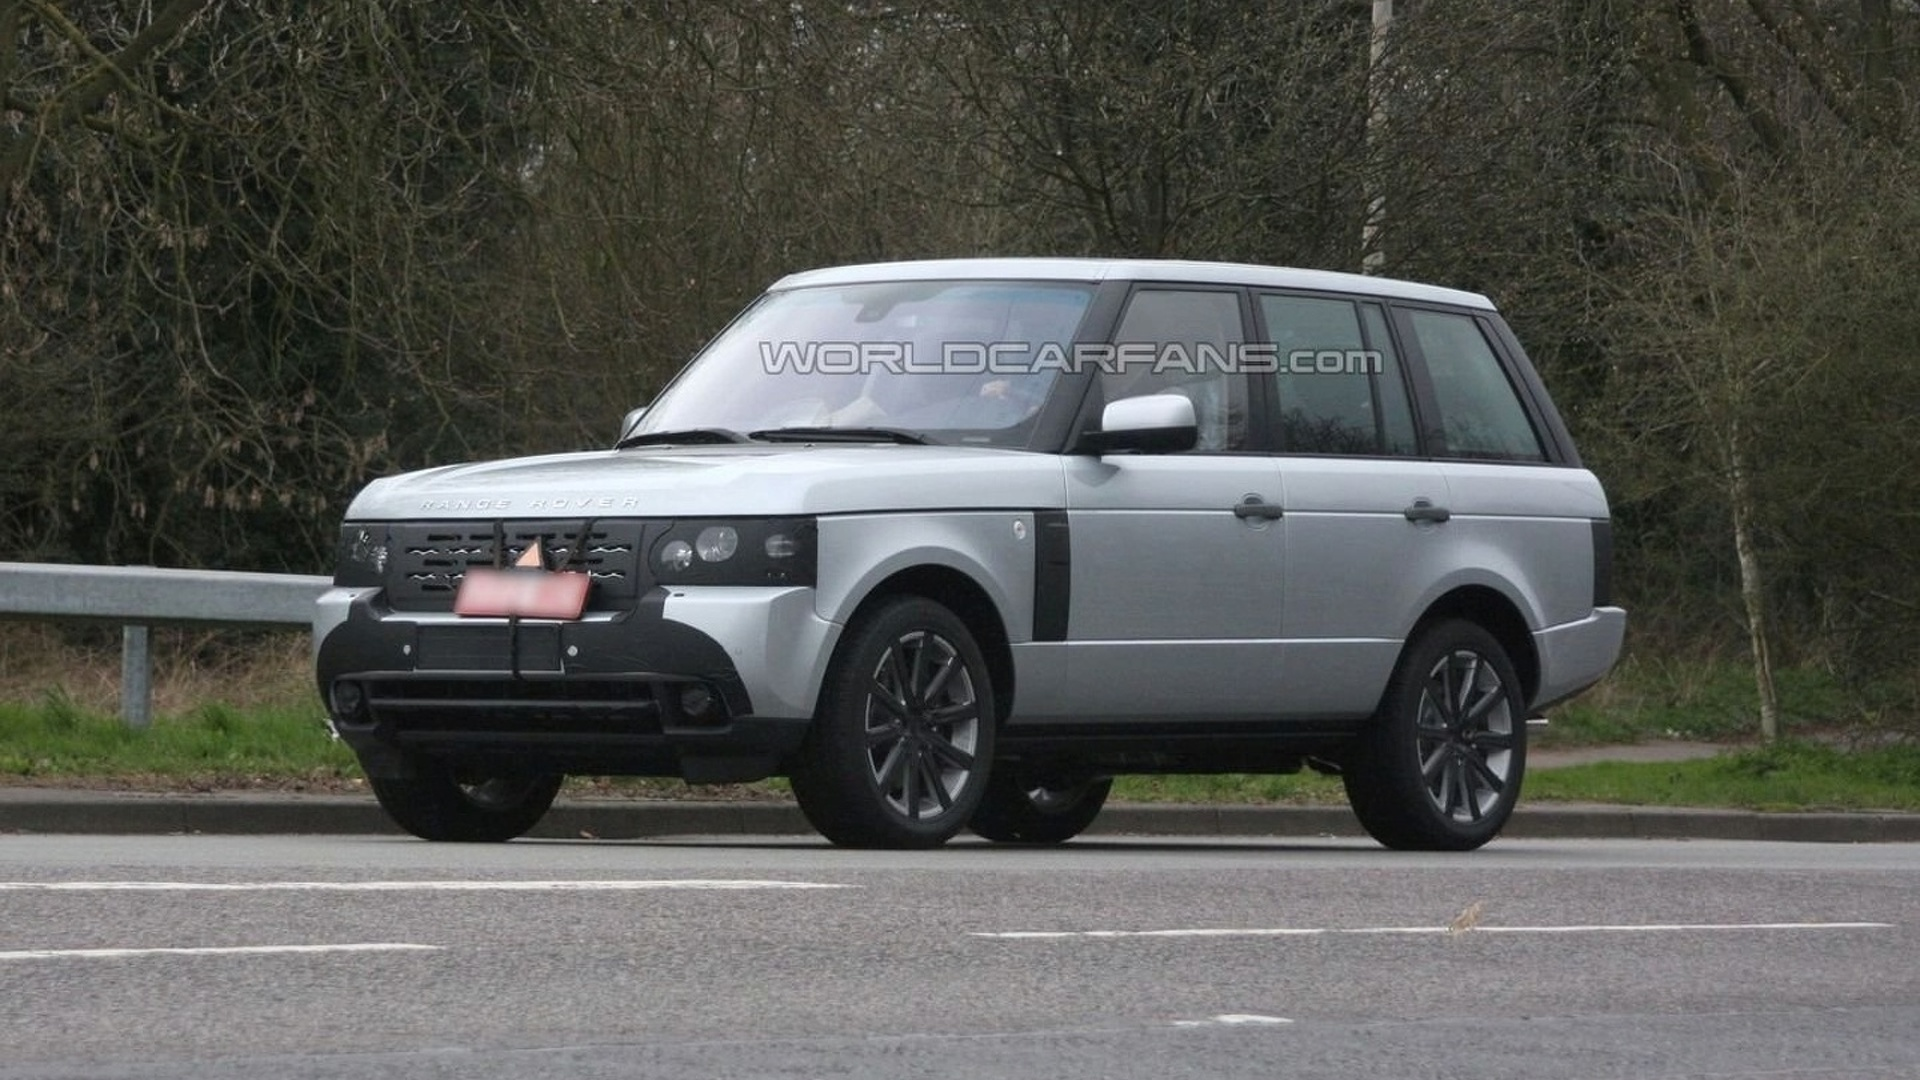 Range Rover Facelift Latest Spy Photos Reveal New Details